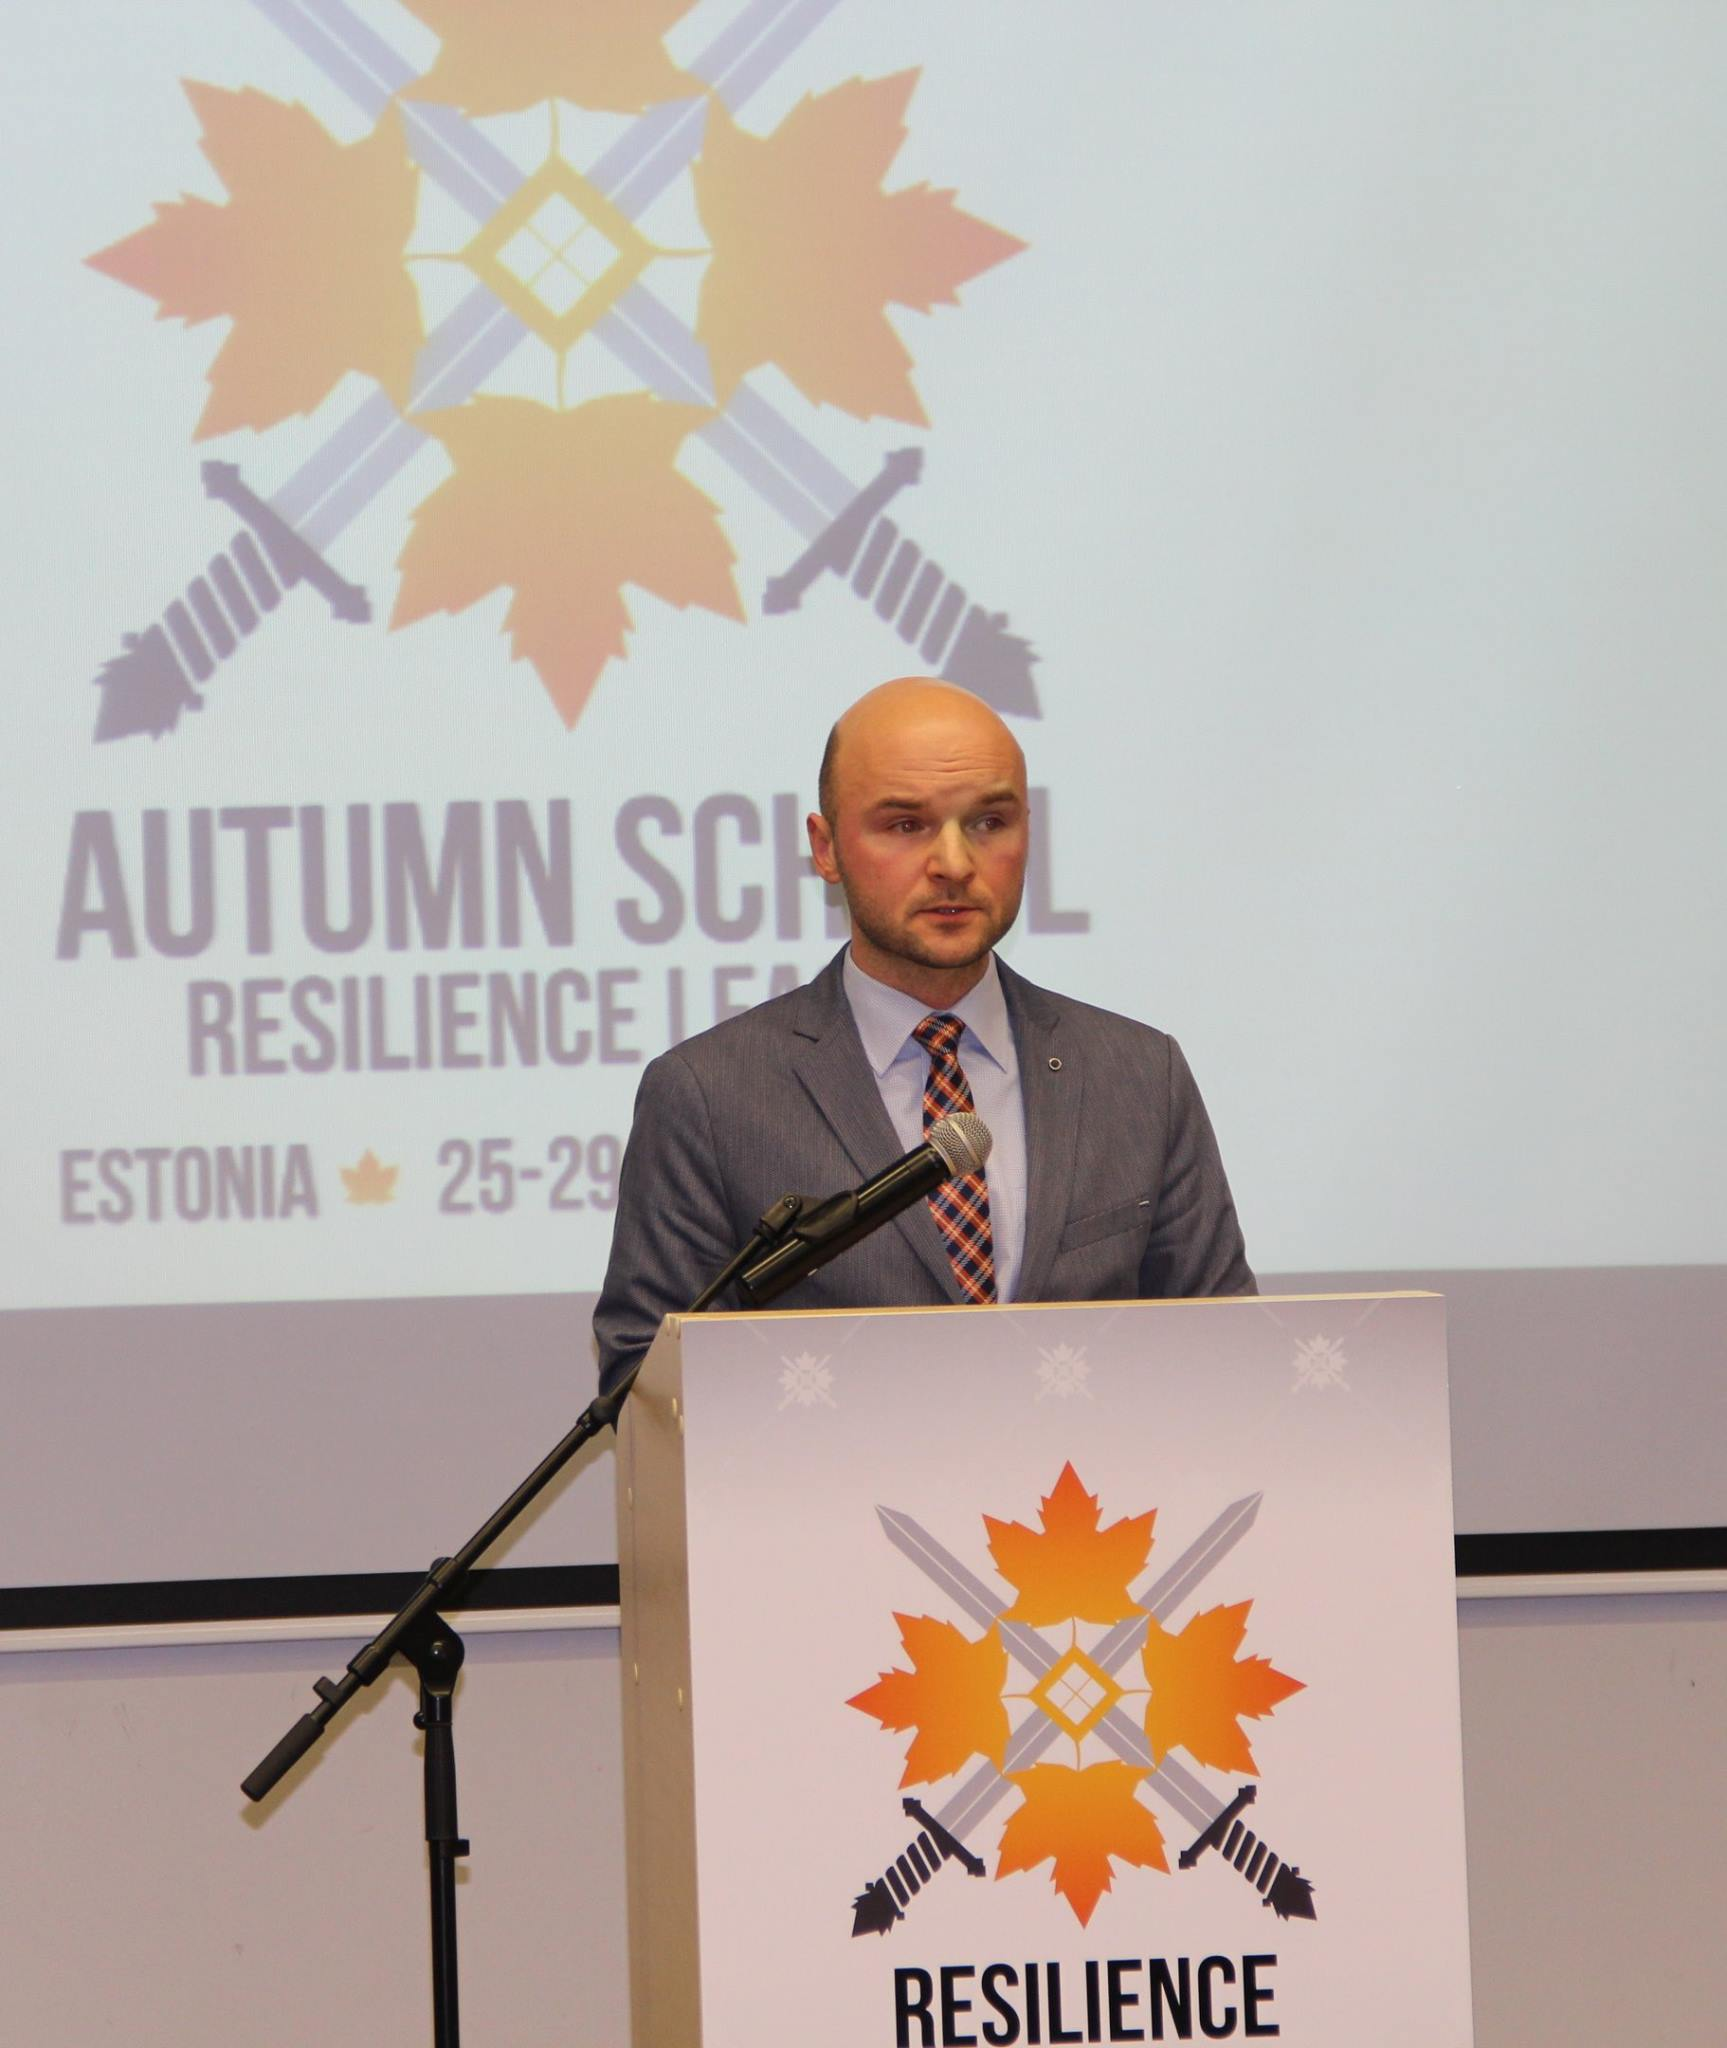 Image for ICDS Organised International Autumn School Resilience League 2016